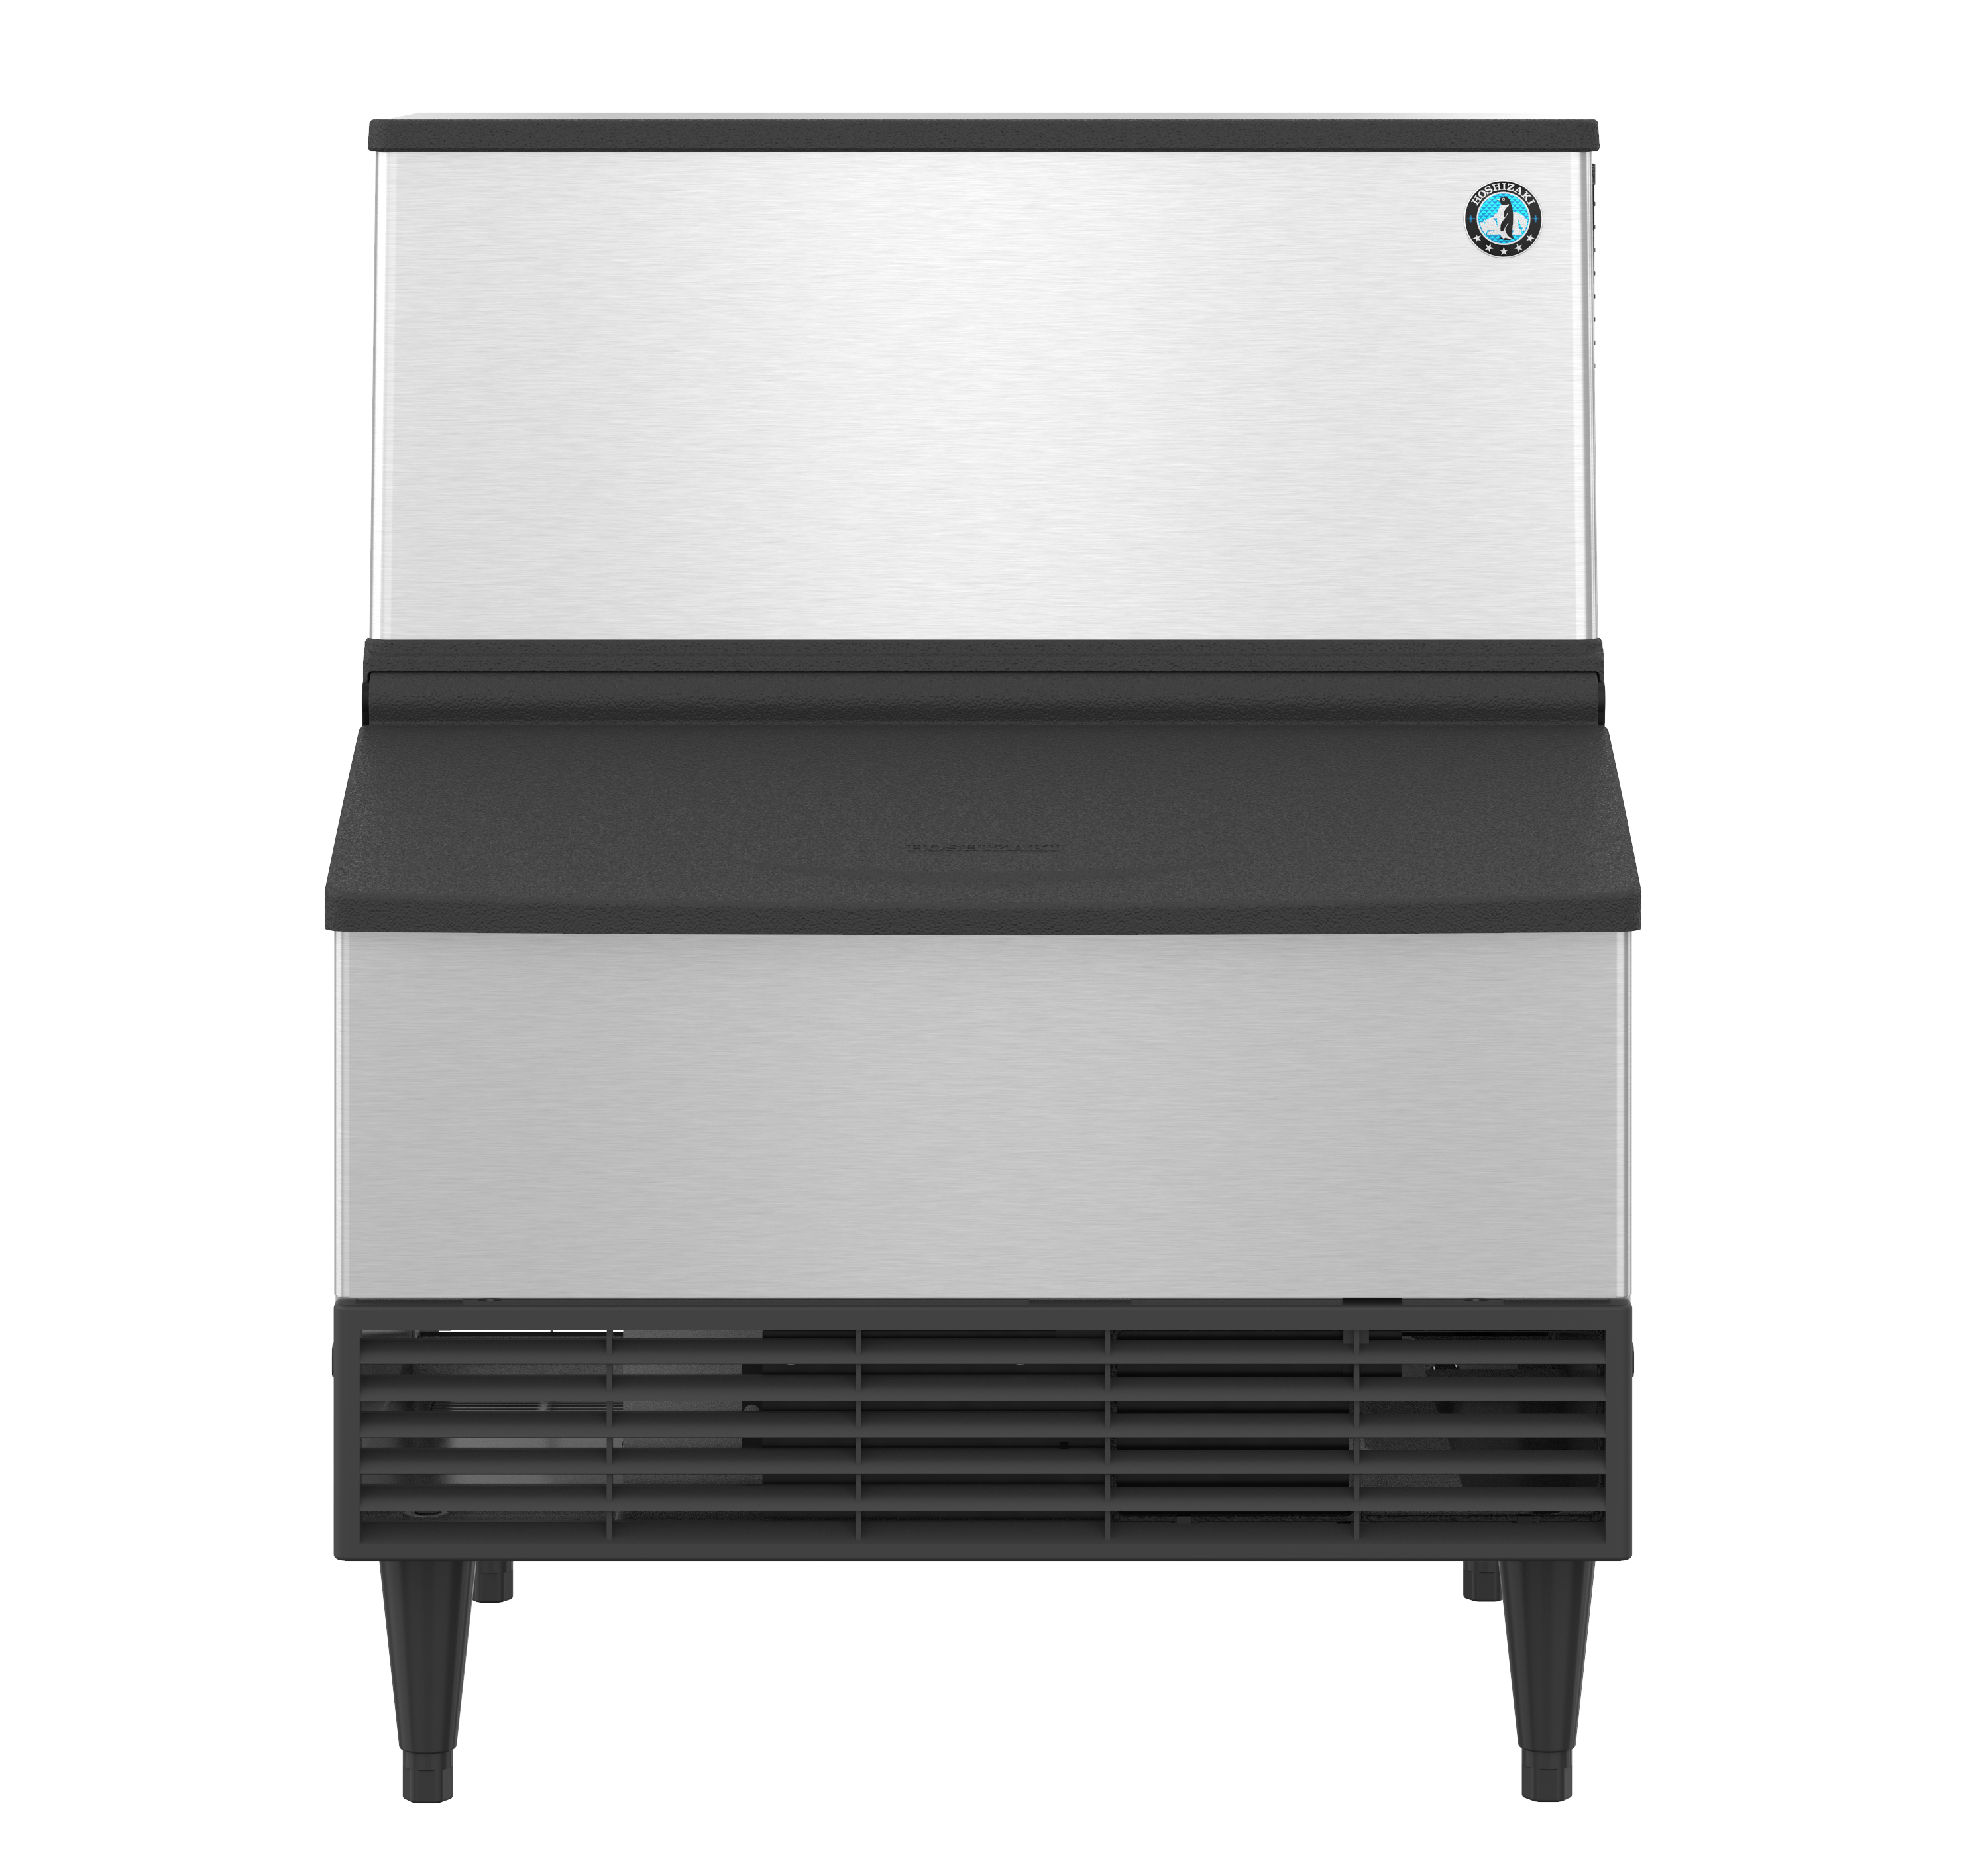 """Ice Maker With Bin, Cube-Style, 30""""W, air-cooled, self-contained condenser,"""